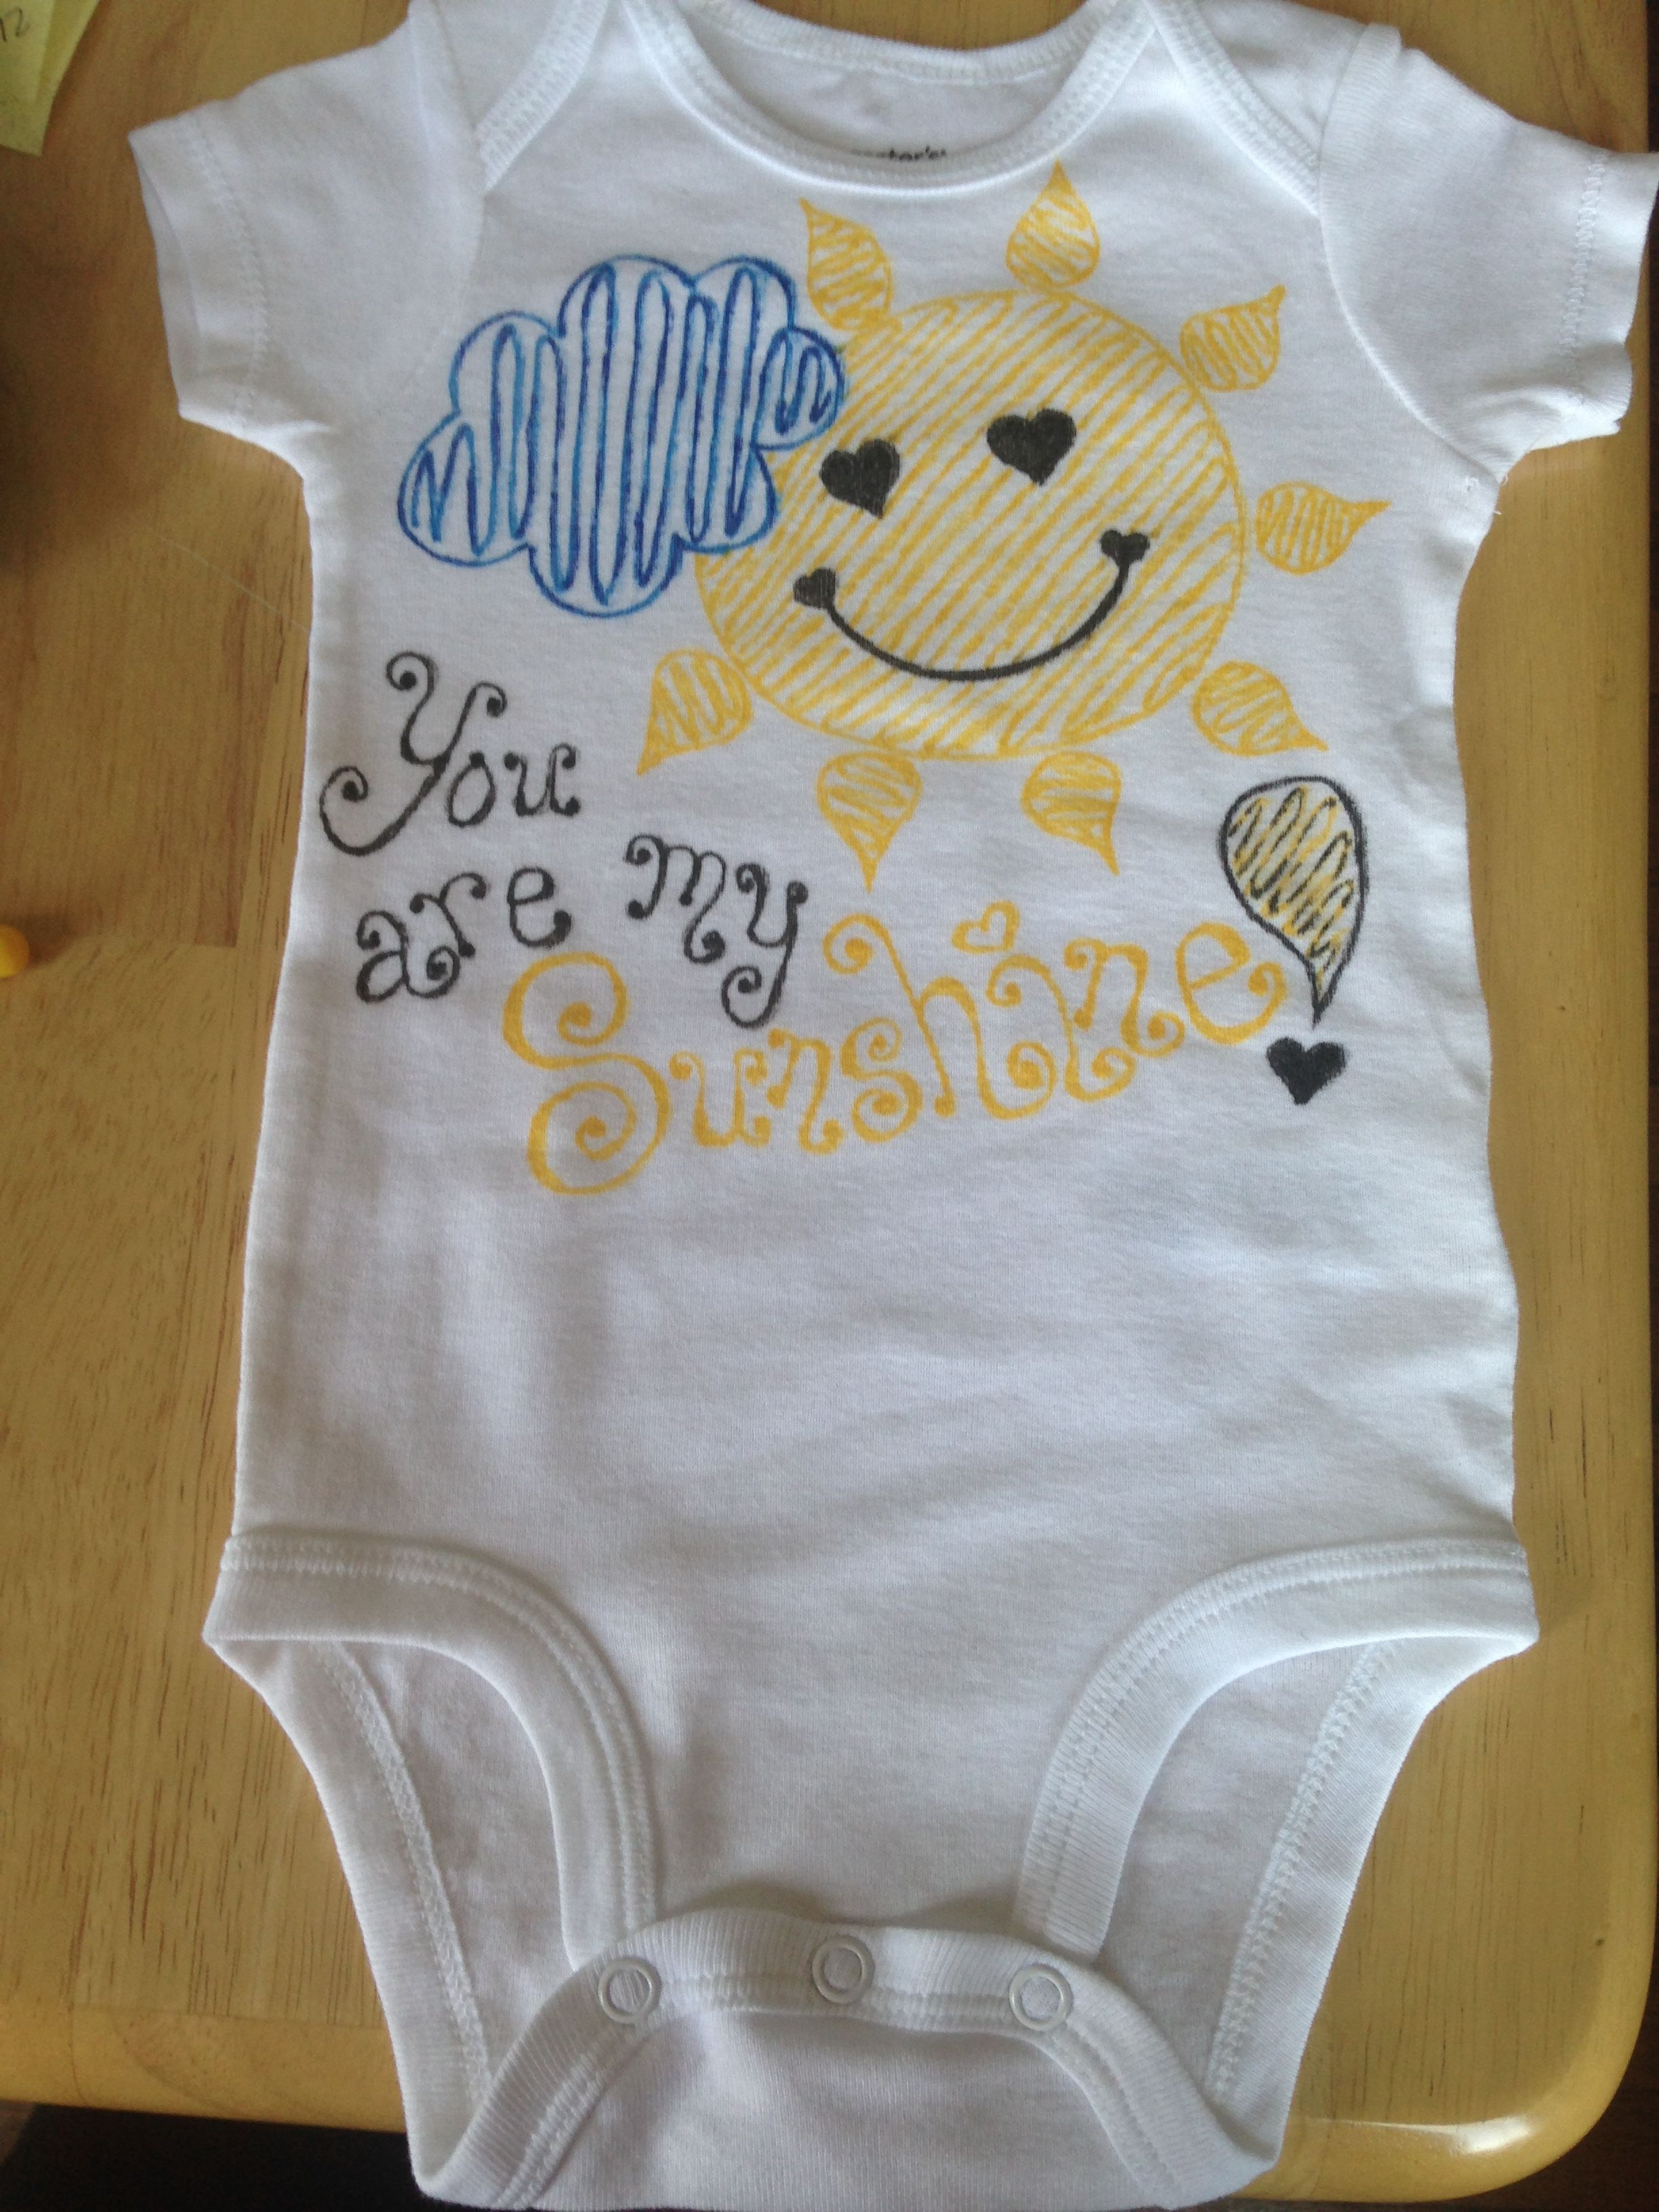 4ab6ecc1d You Are My Sunshine! Carter's 6 Months Onesie | My Handpainted ...